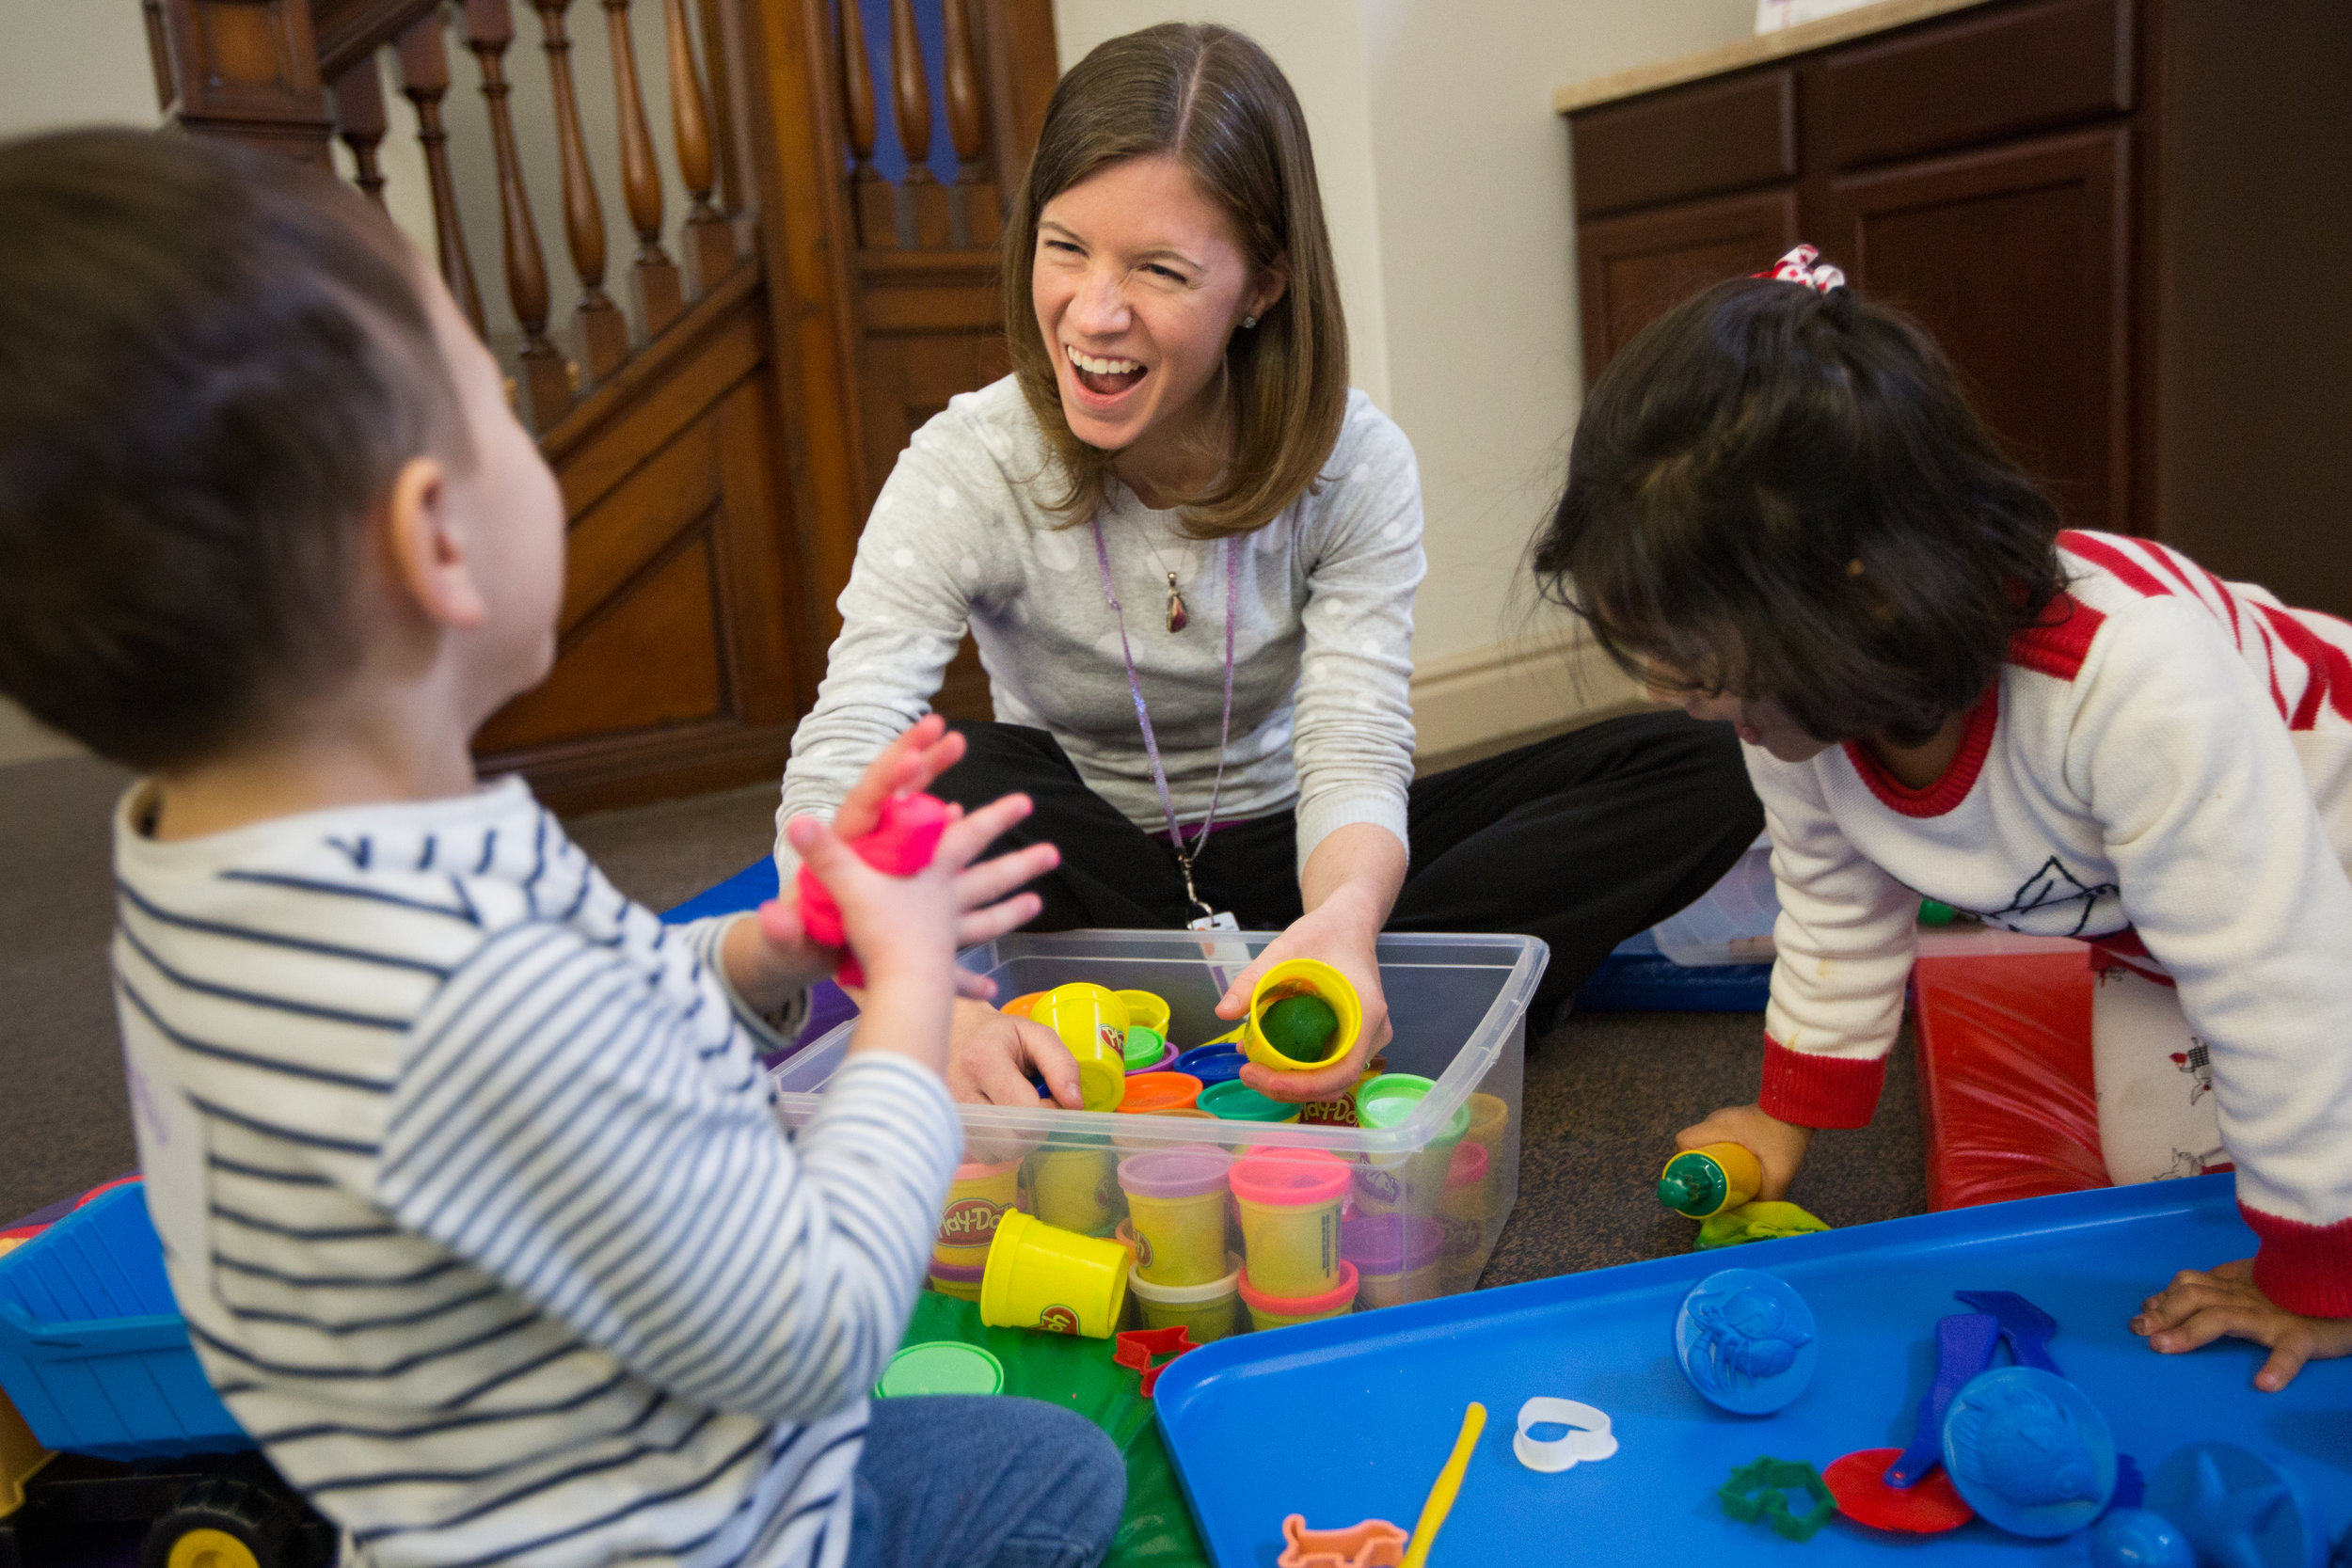 Child development experts share information and play with families at CLP – Lawrenceville's Family PlayShop